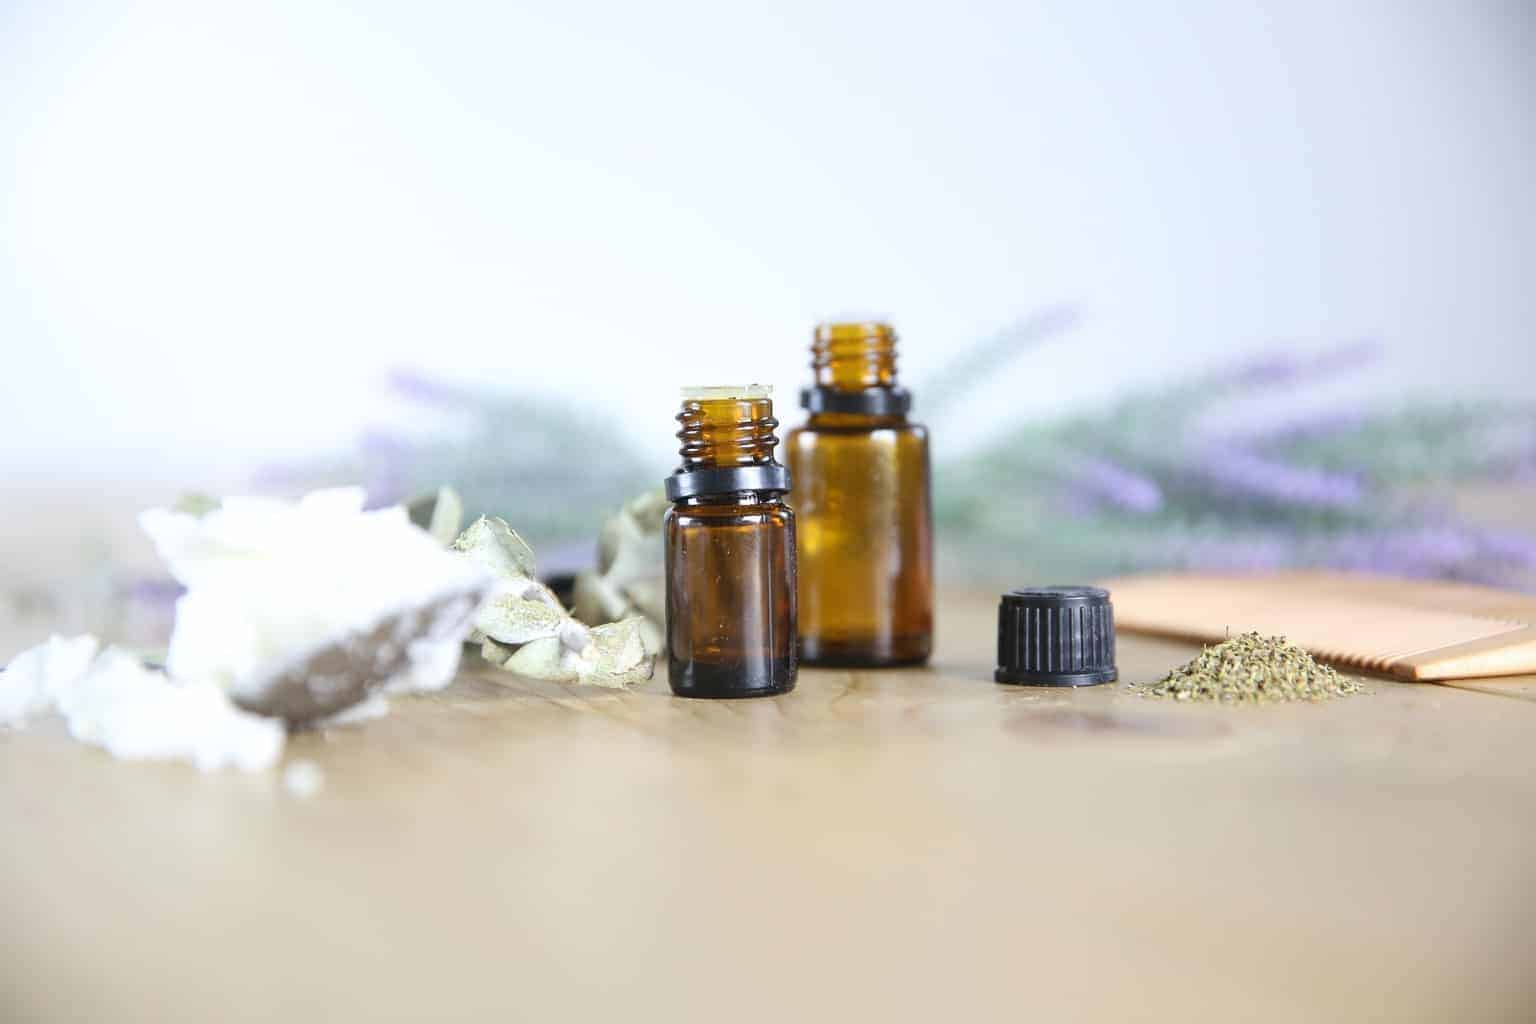 essential oil bottles with lavender sprigs on wooden table